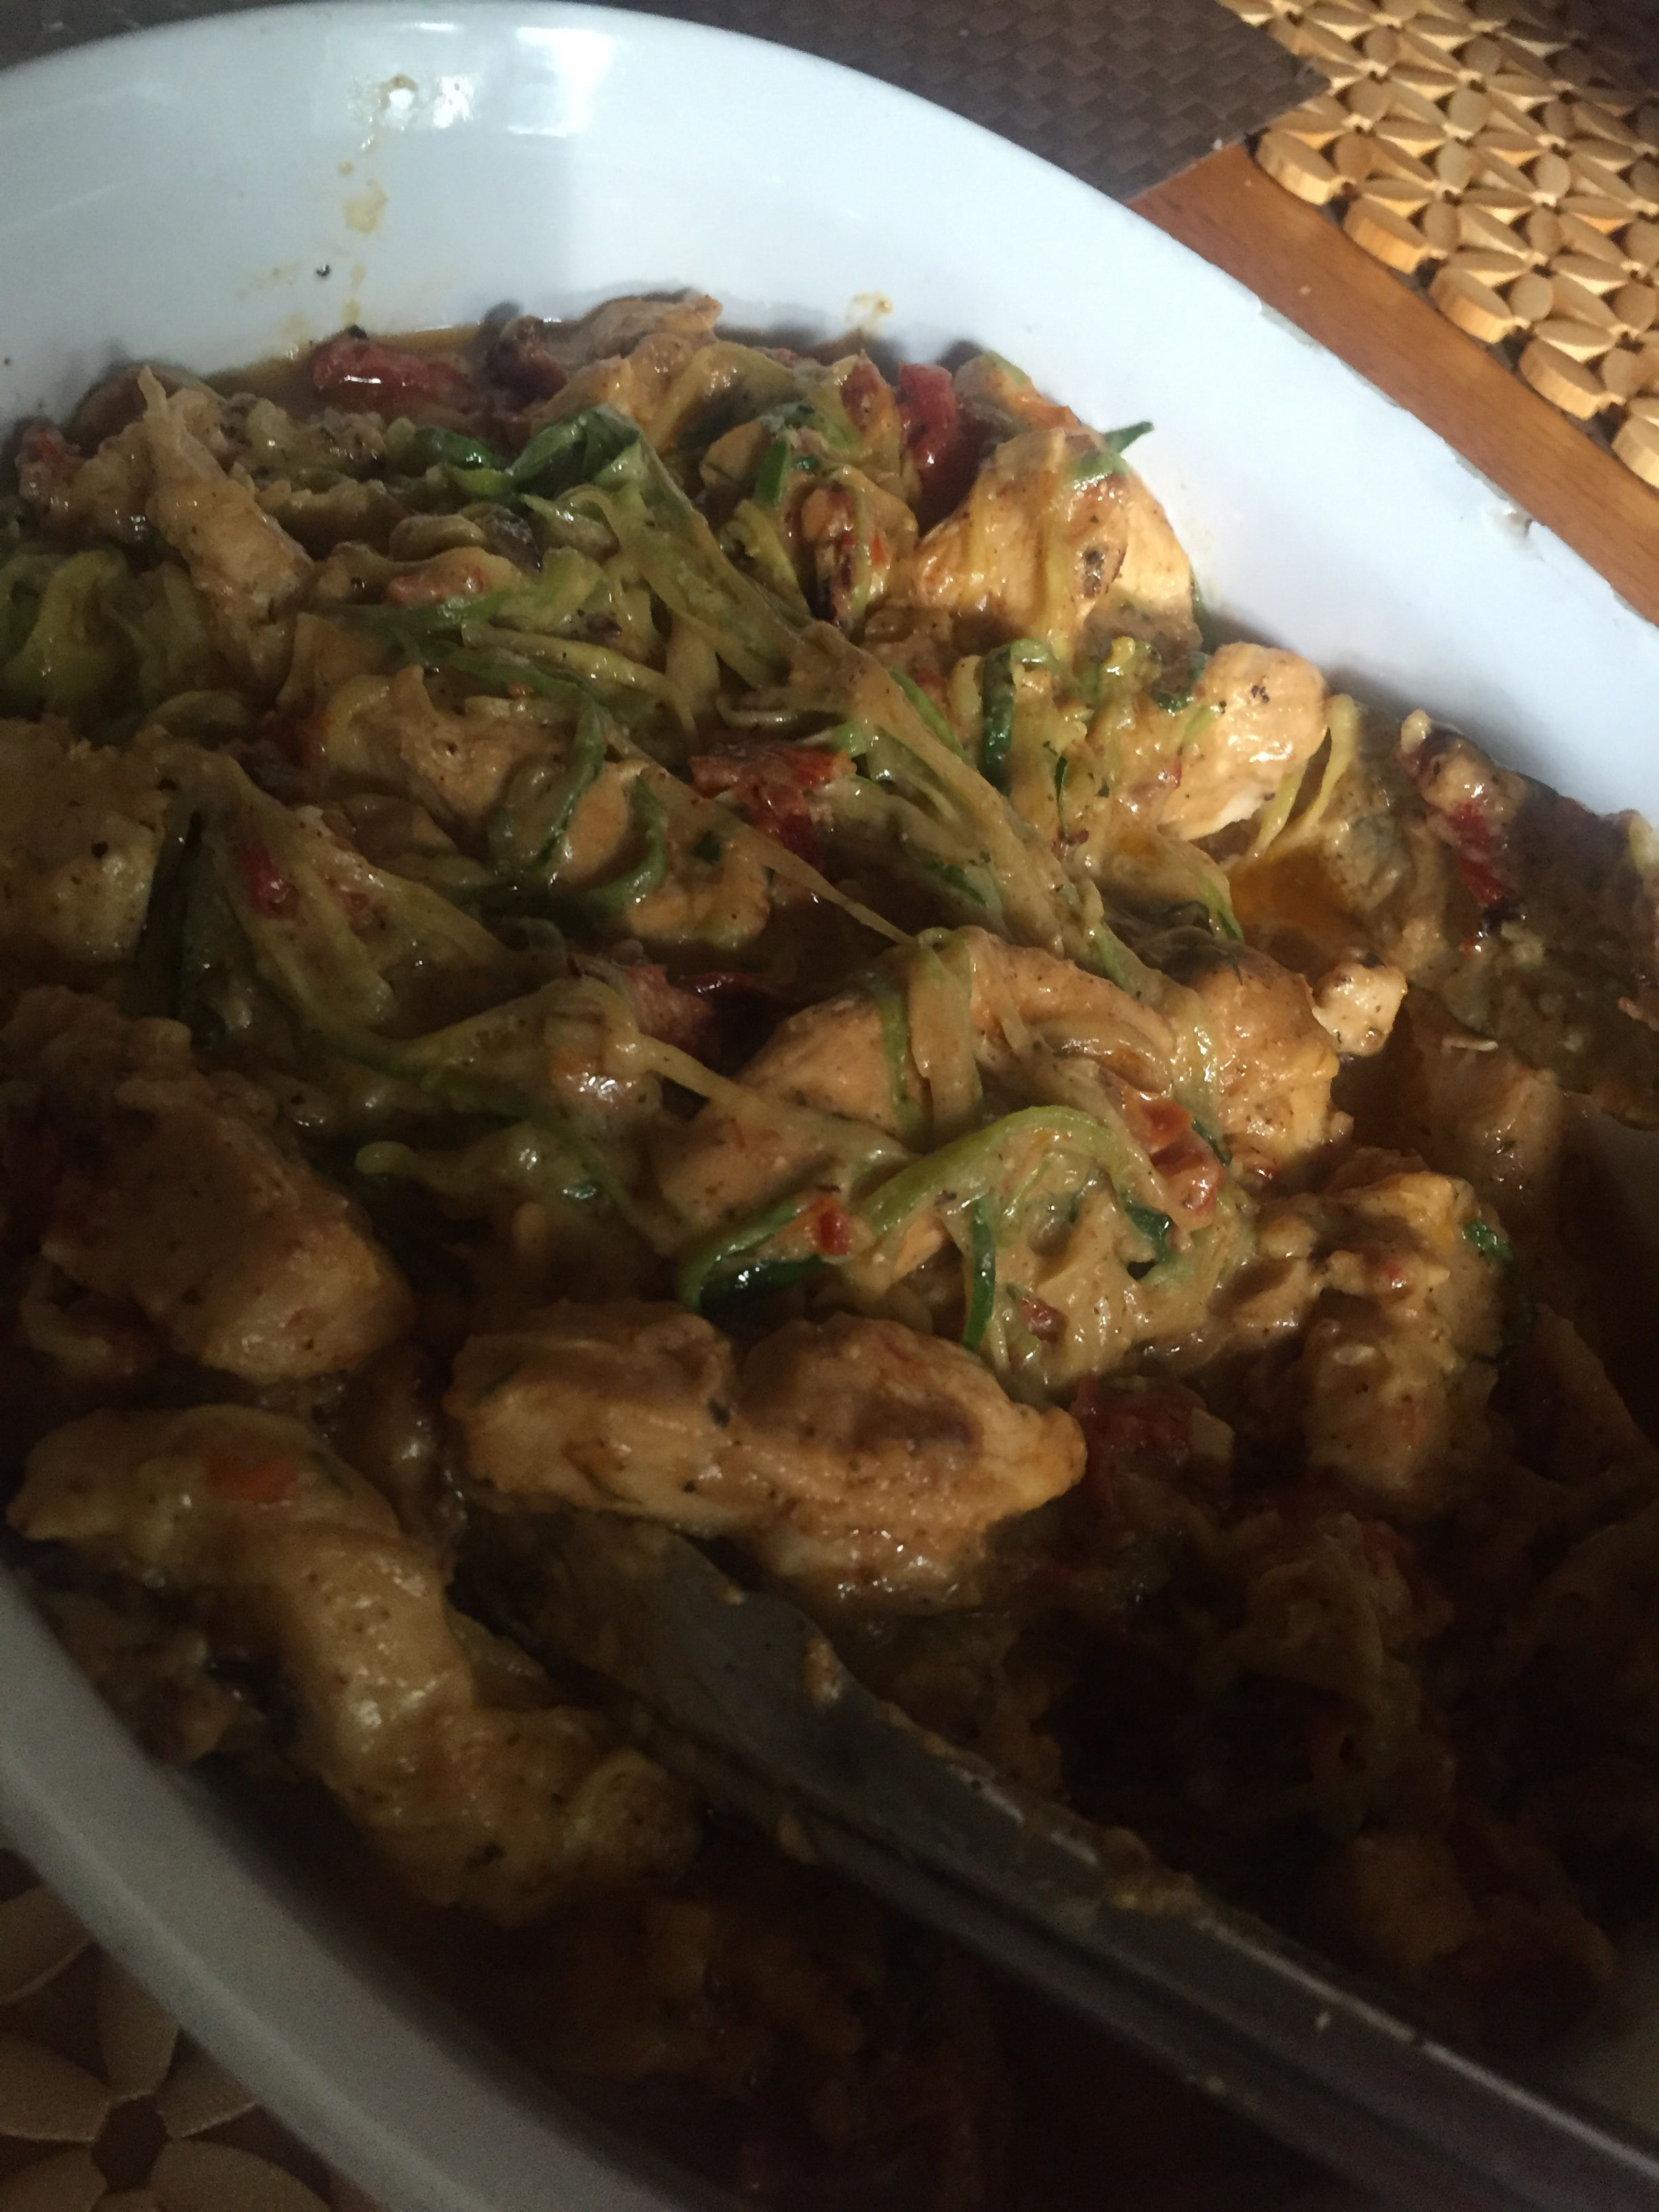 Chicken sautéed in Garlic and sun dried tomatoes and zucchini pasta and don't forget the Parmesan cheese!!